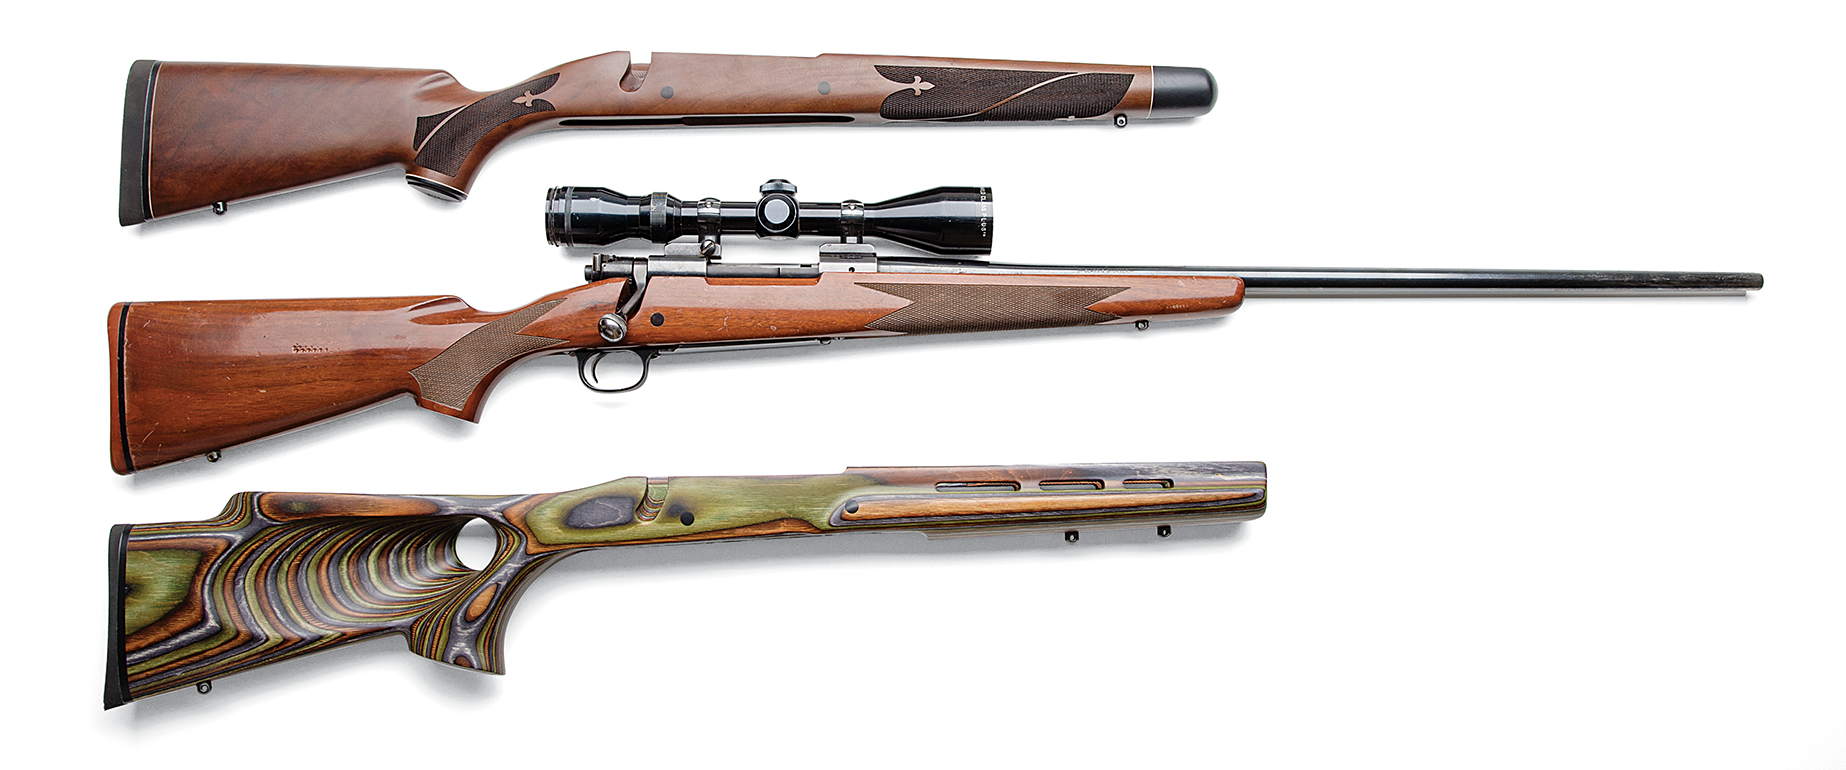 Upgrade Your Favorite Rifle with a New Stock